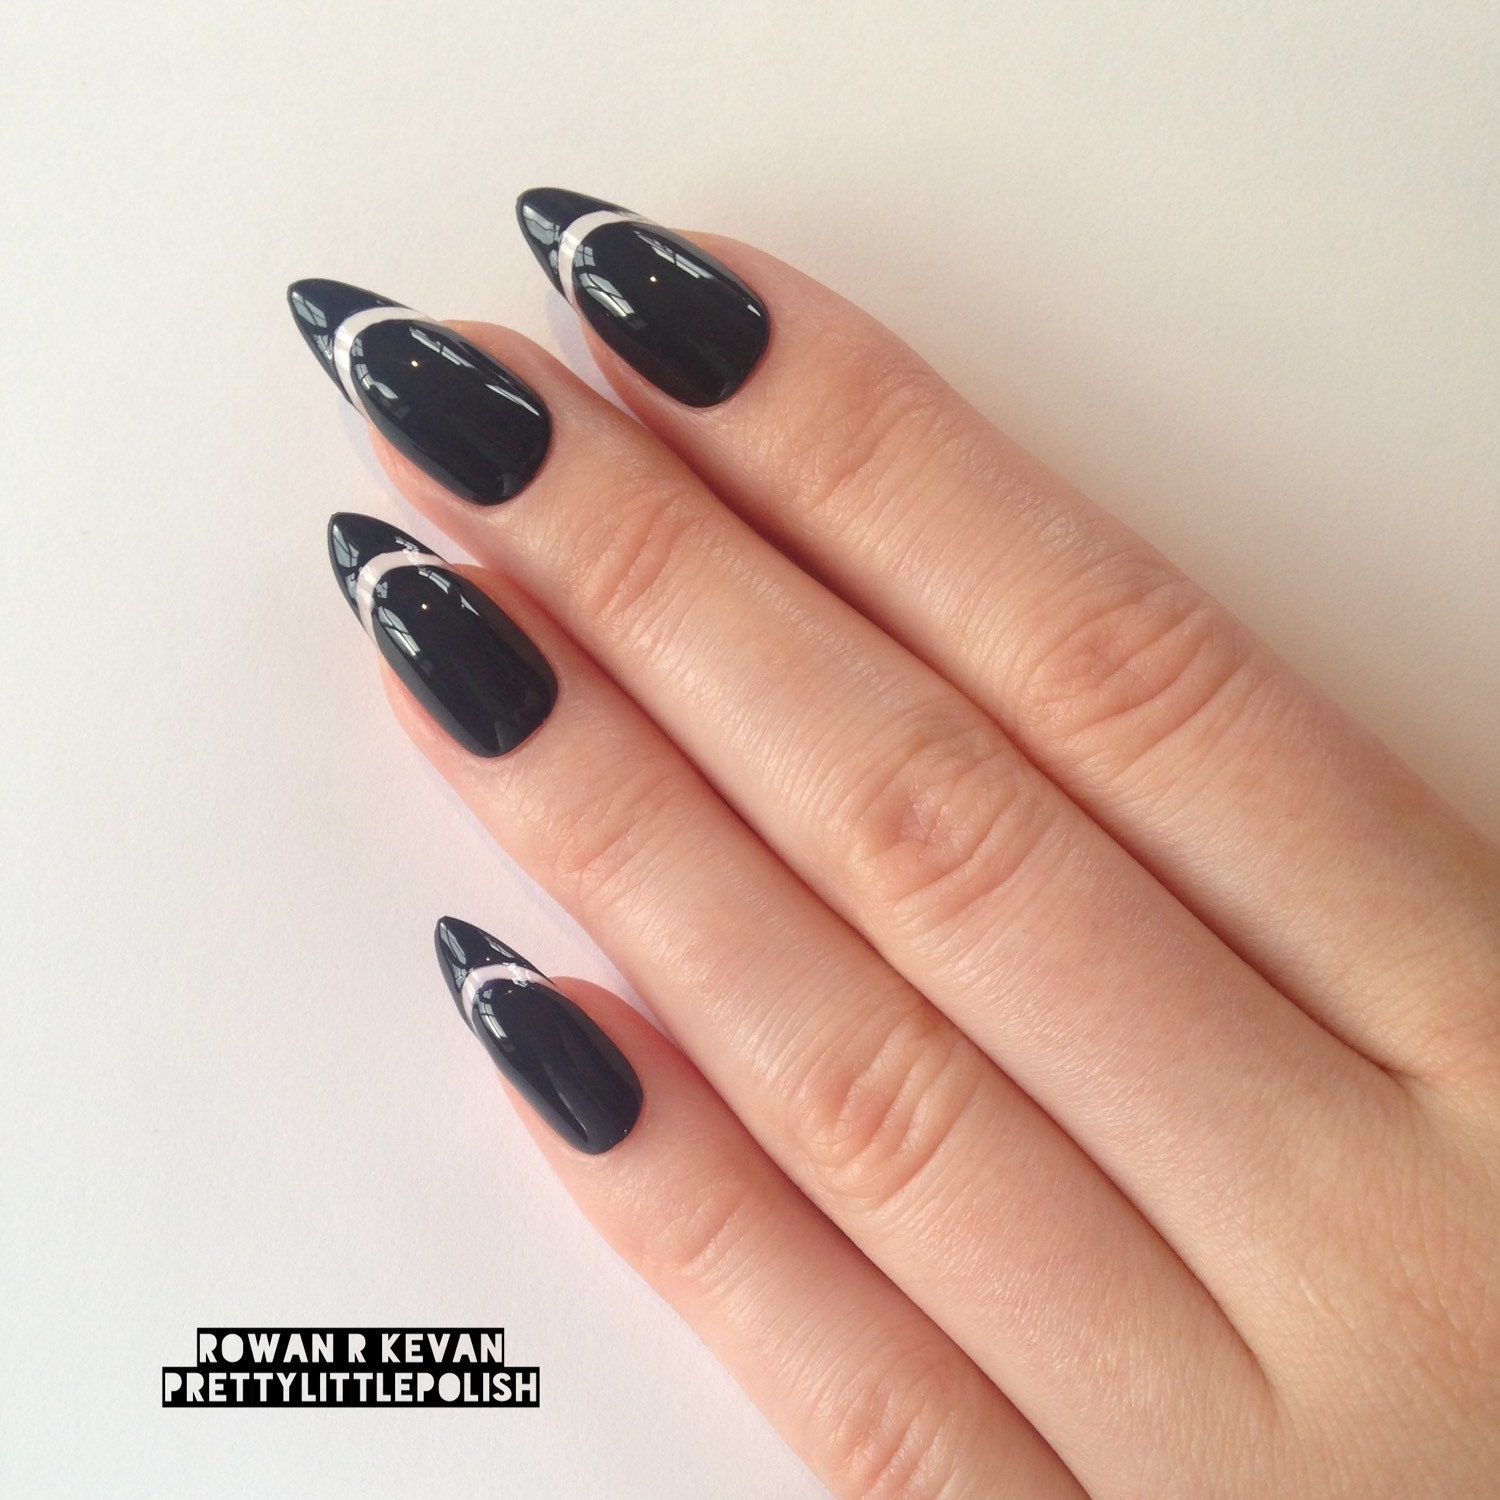 White tip stiletto nails